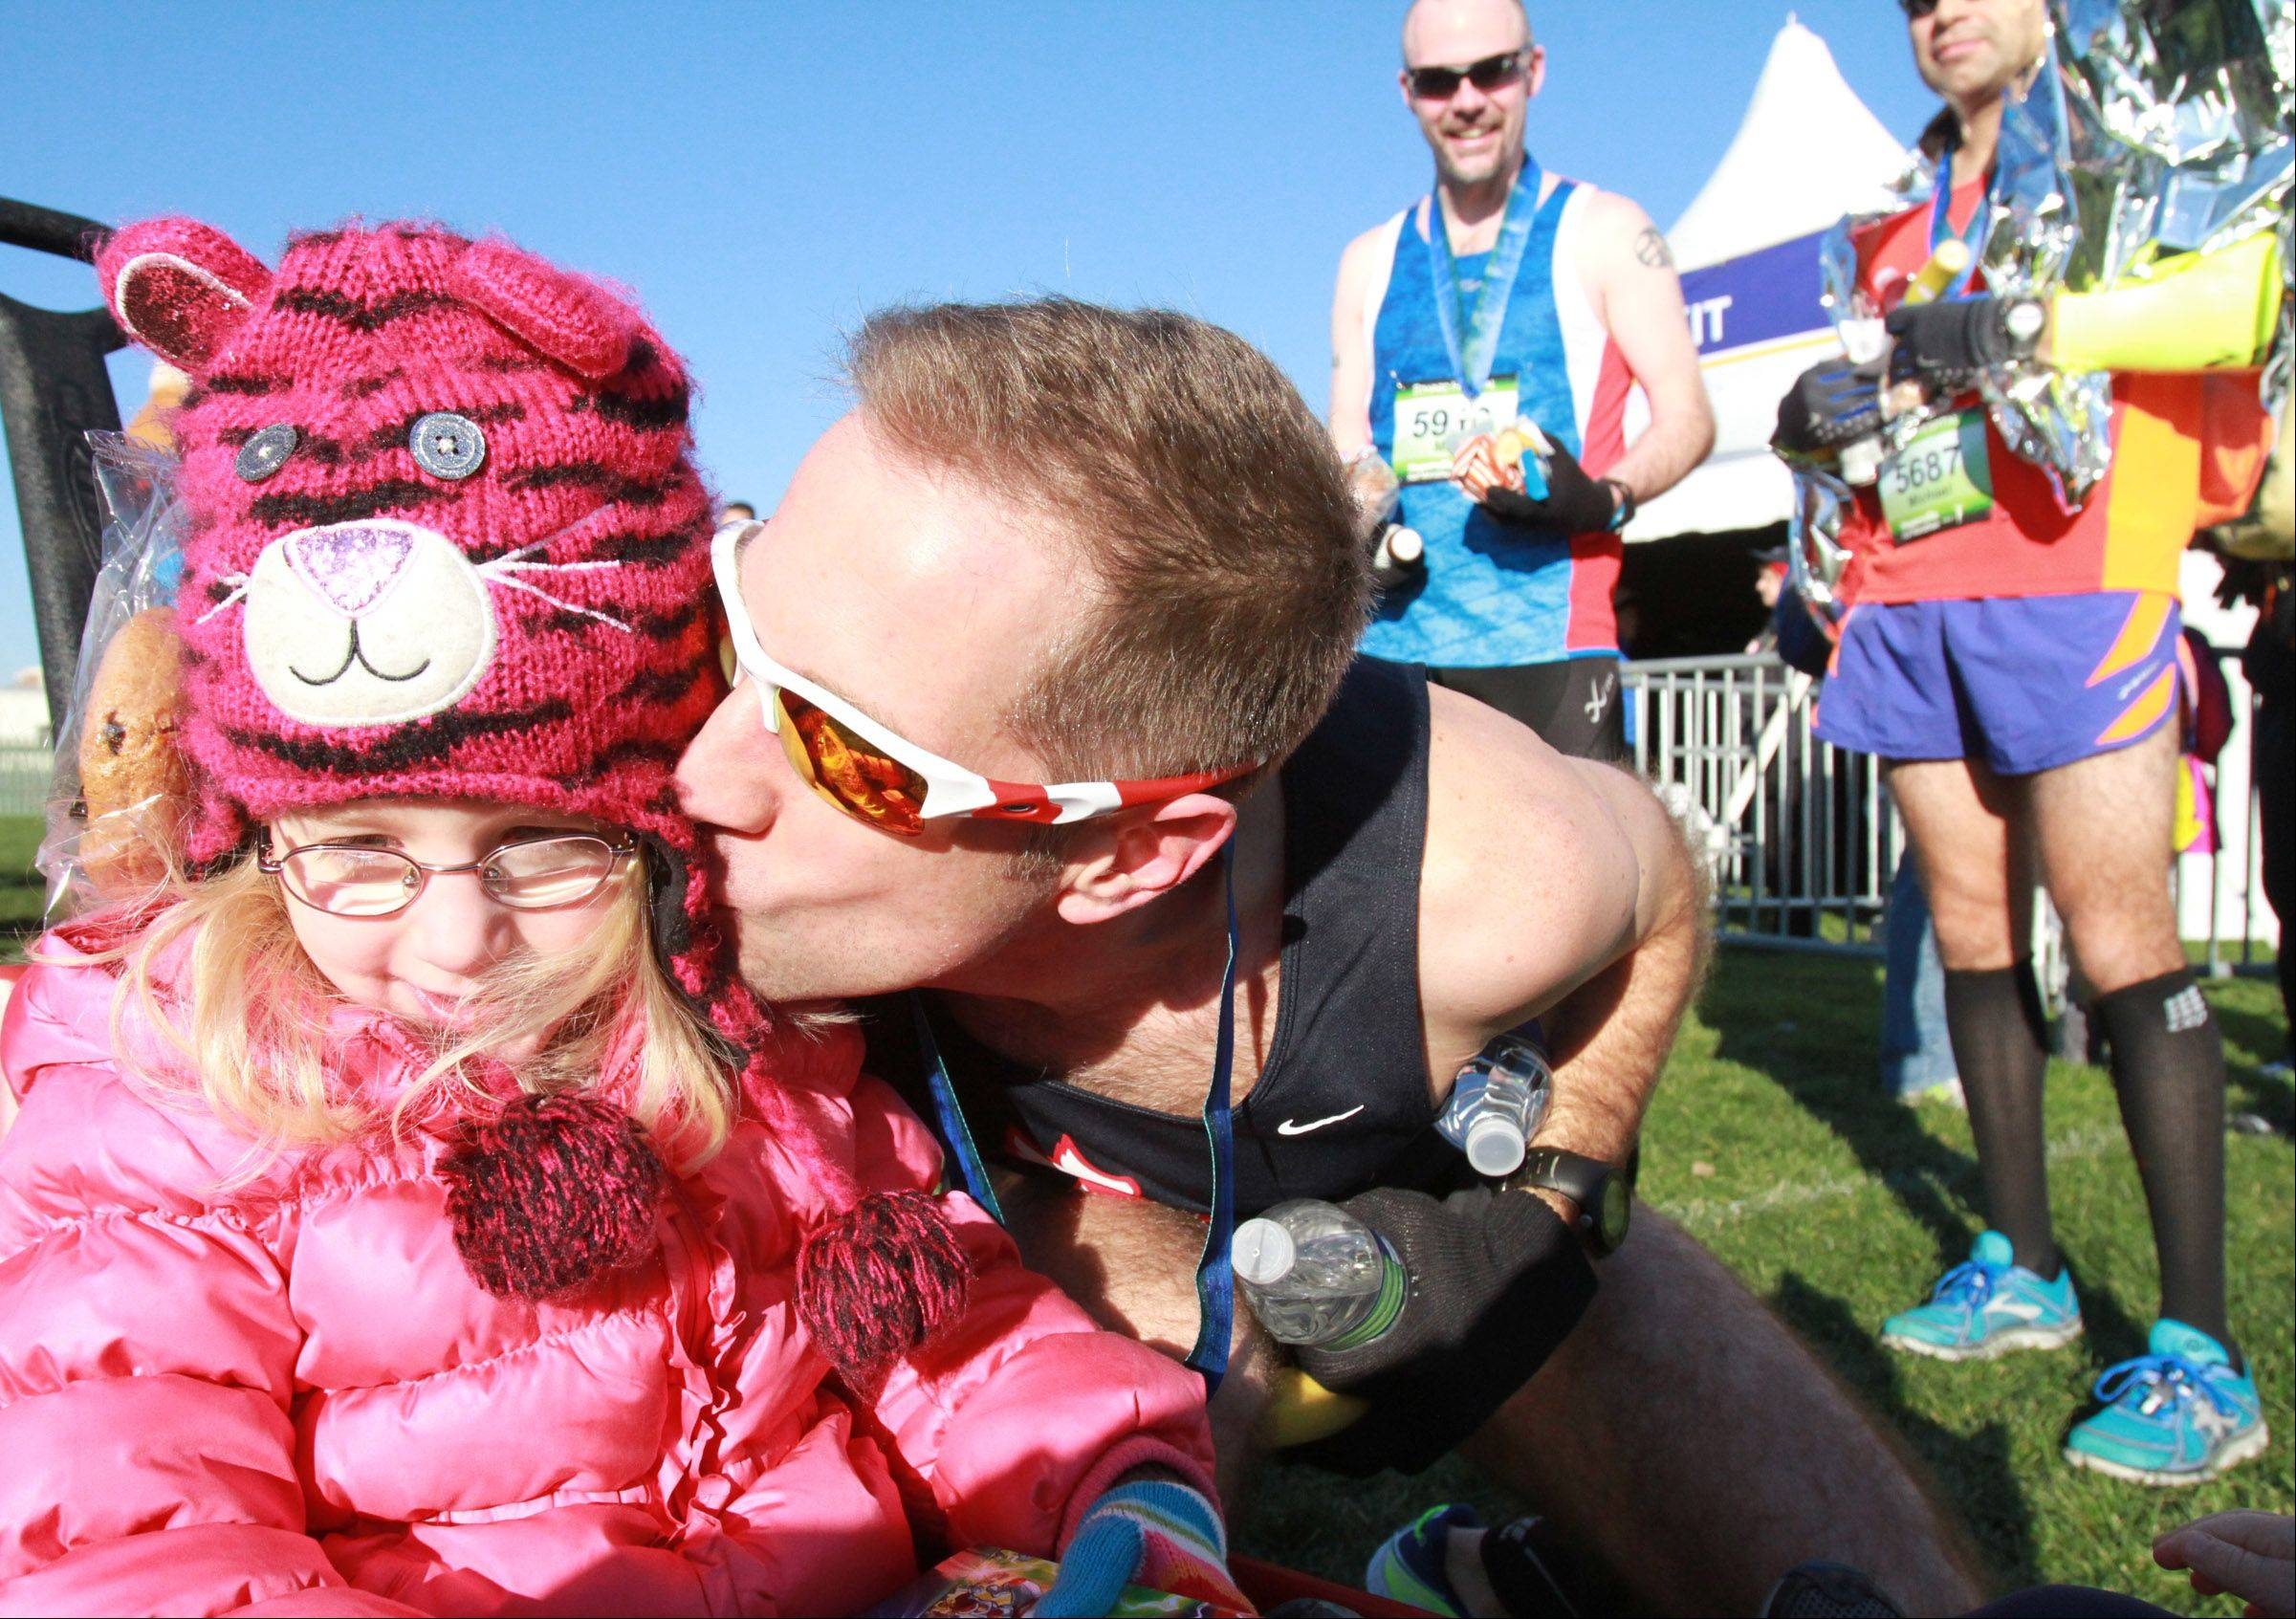 Matt Longino of Downers Grove kisses his 4-year-old daughter, Brooke, after completing the race.